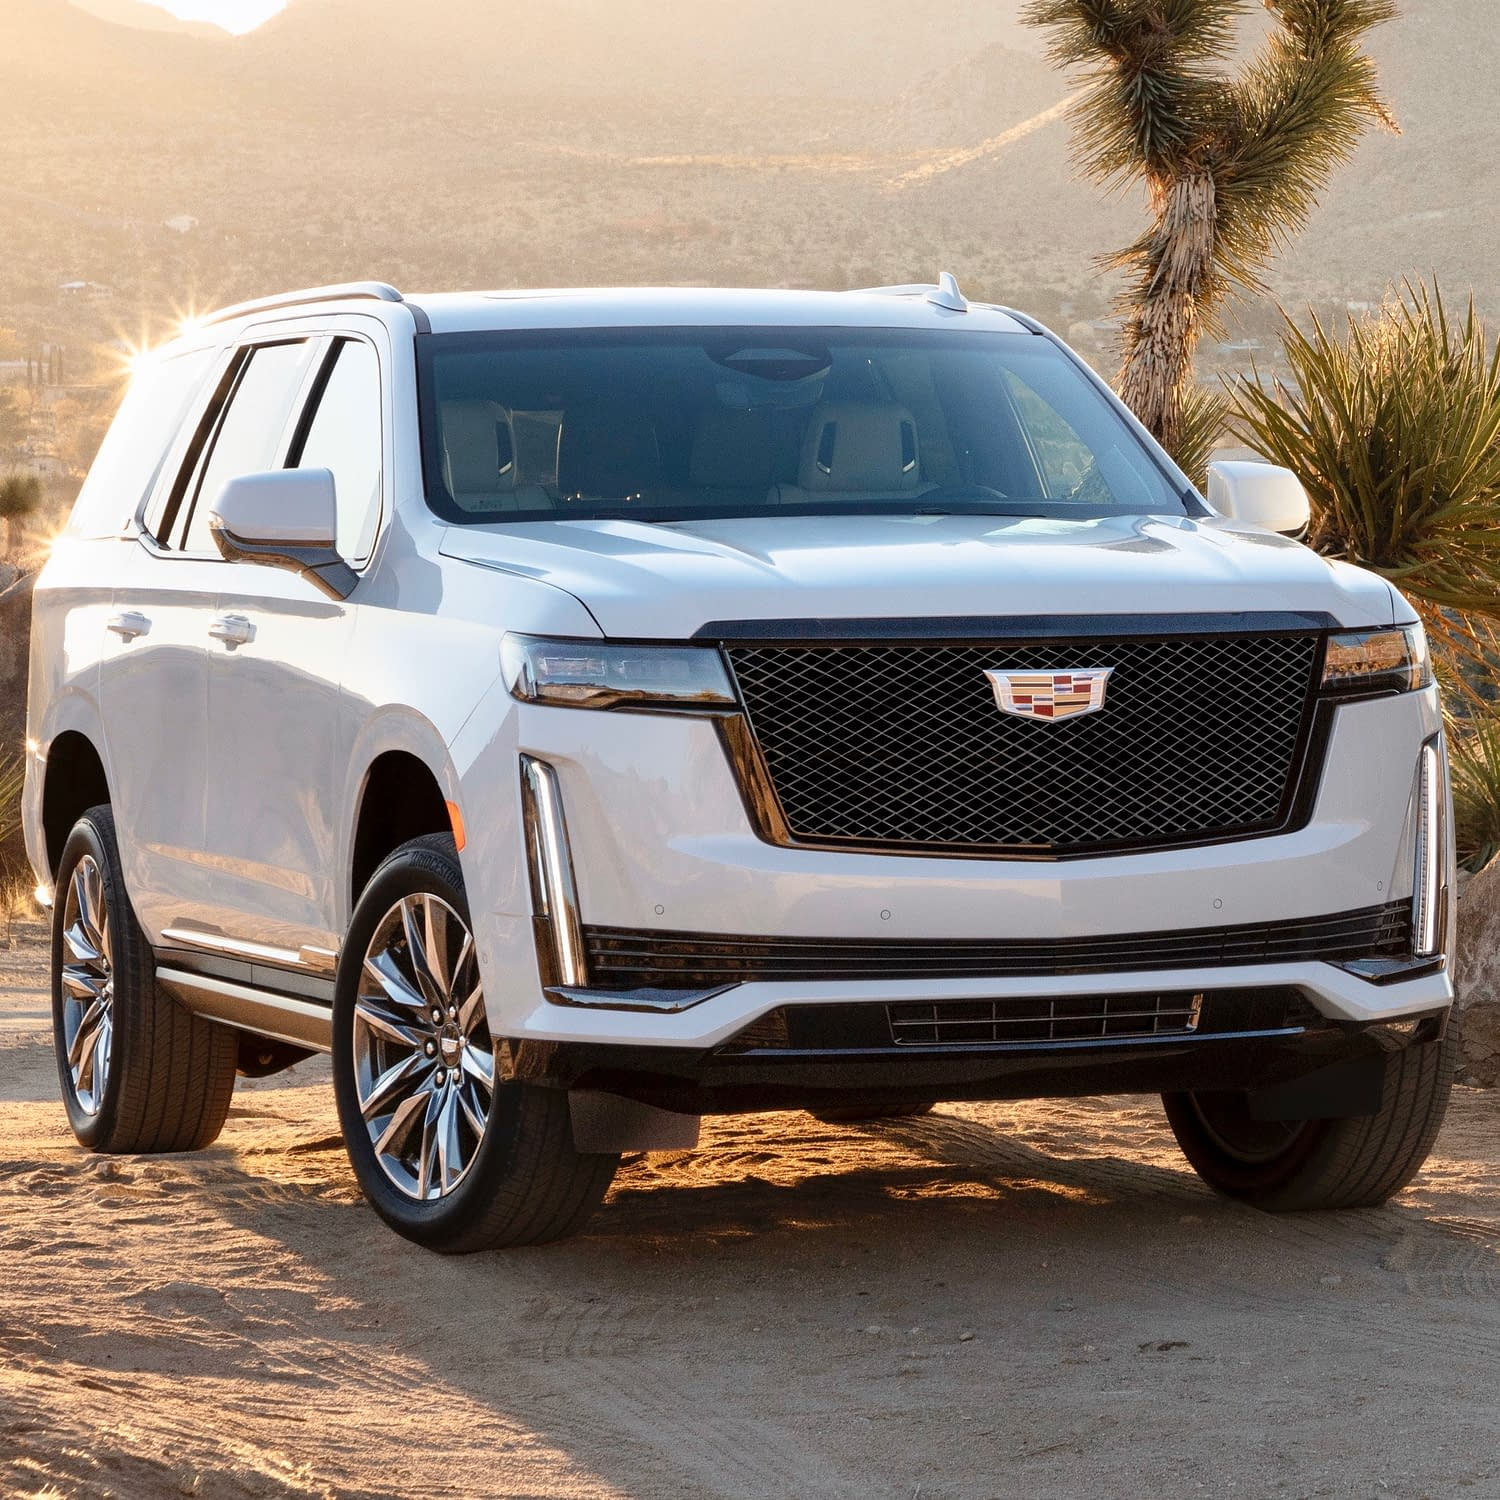 2021 cadillac escalade revealed - all the details • hype